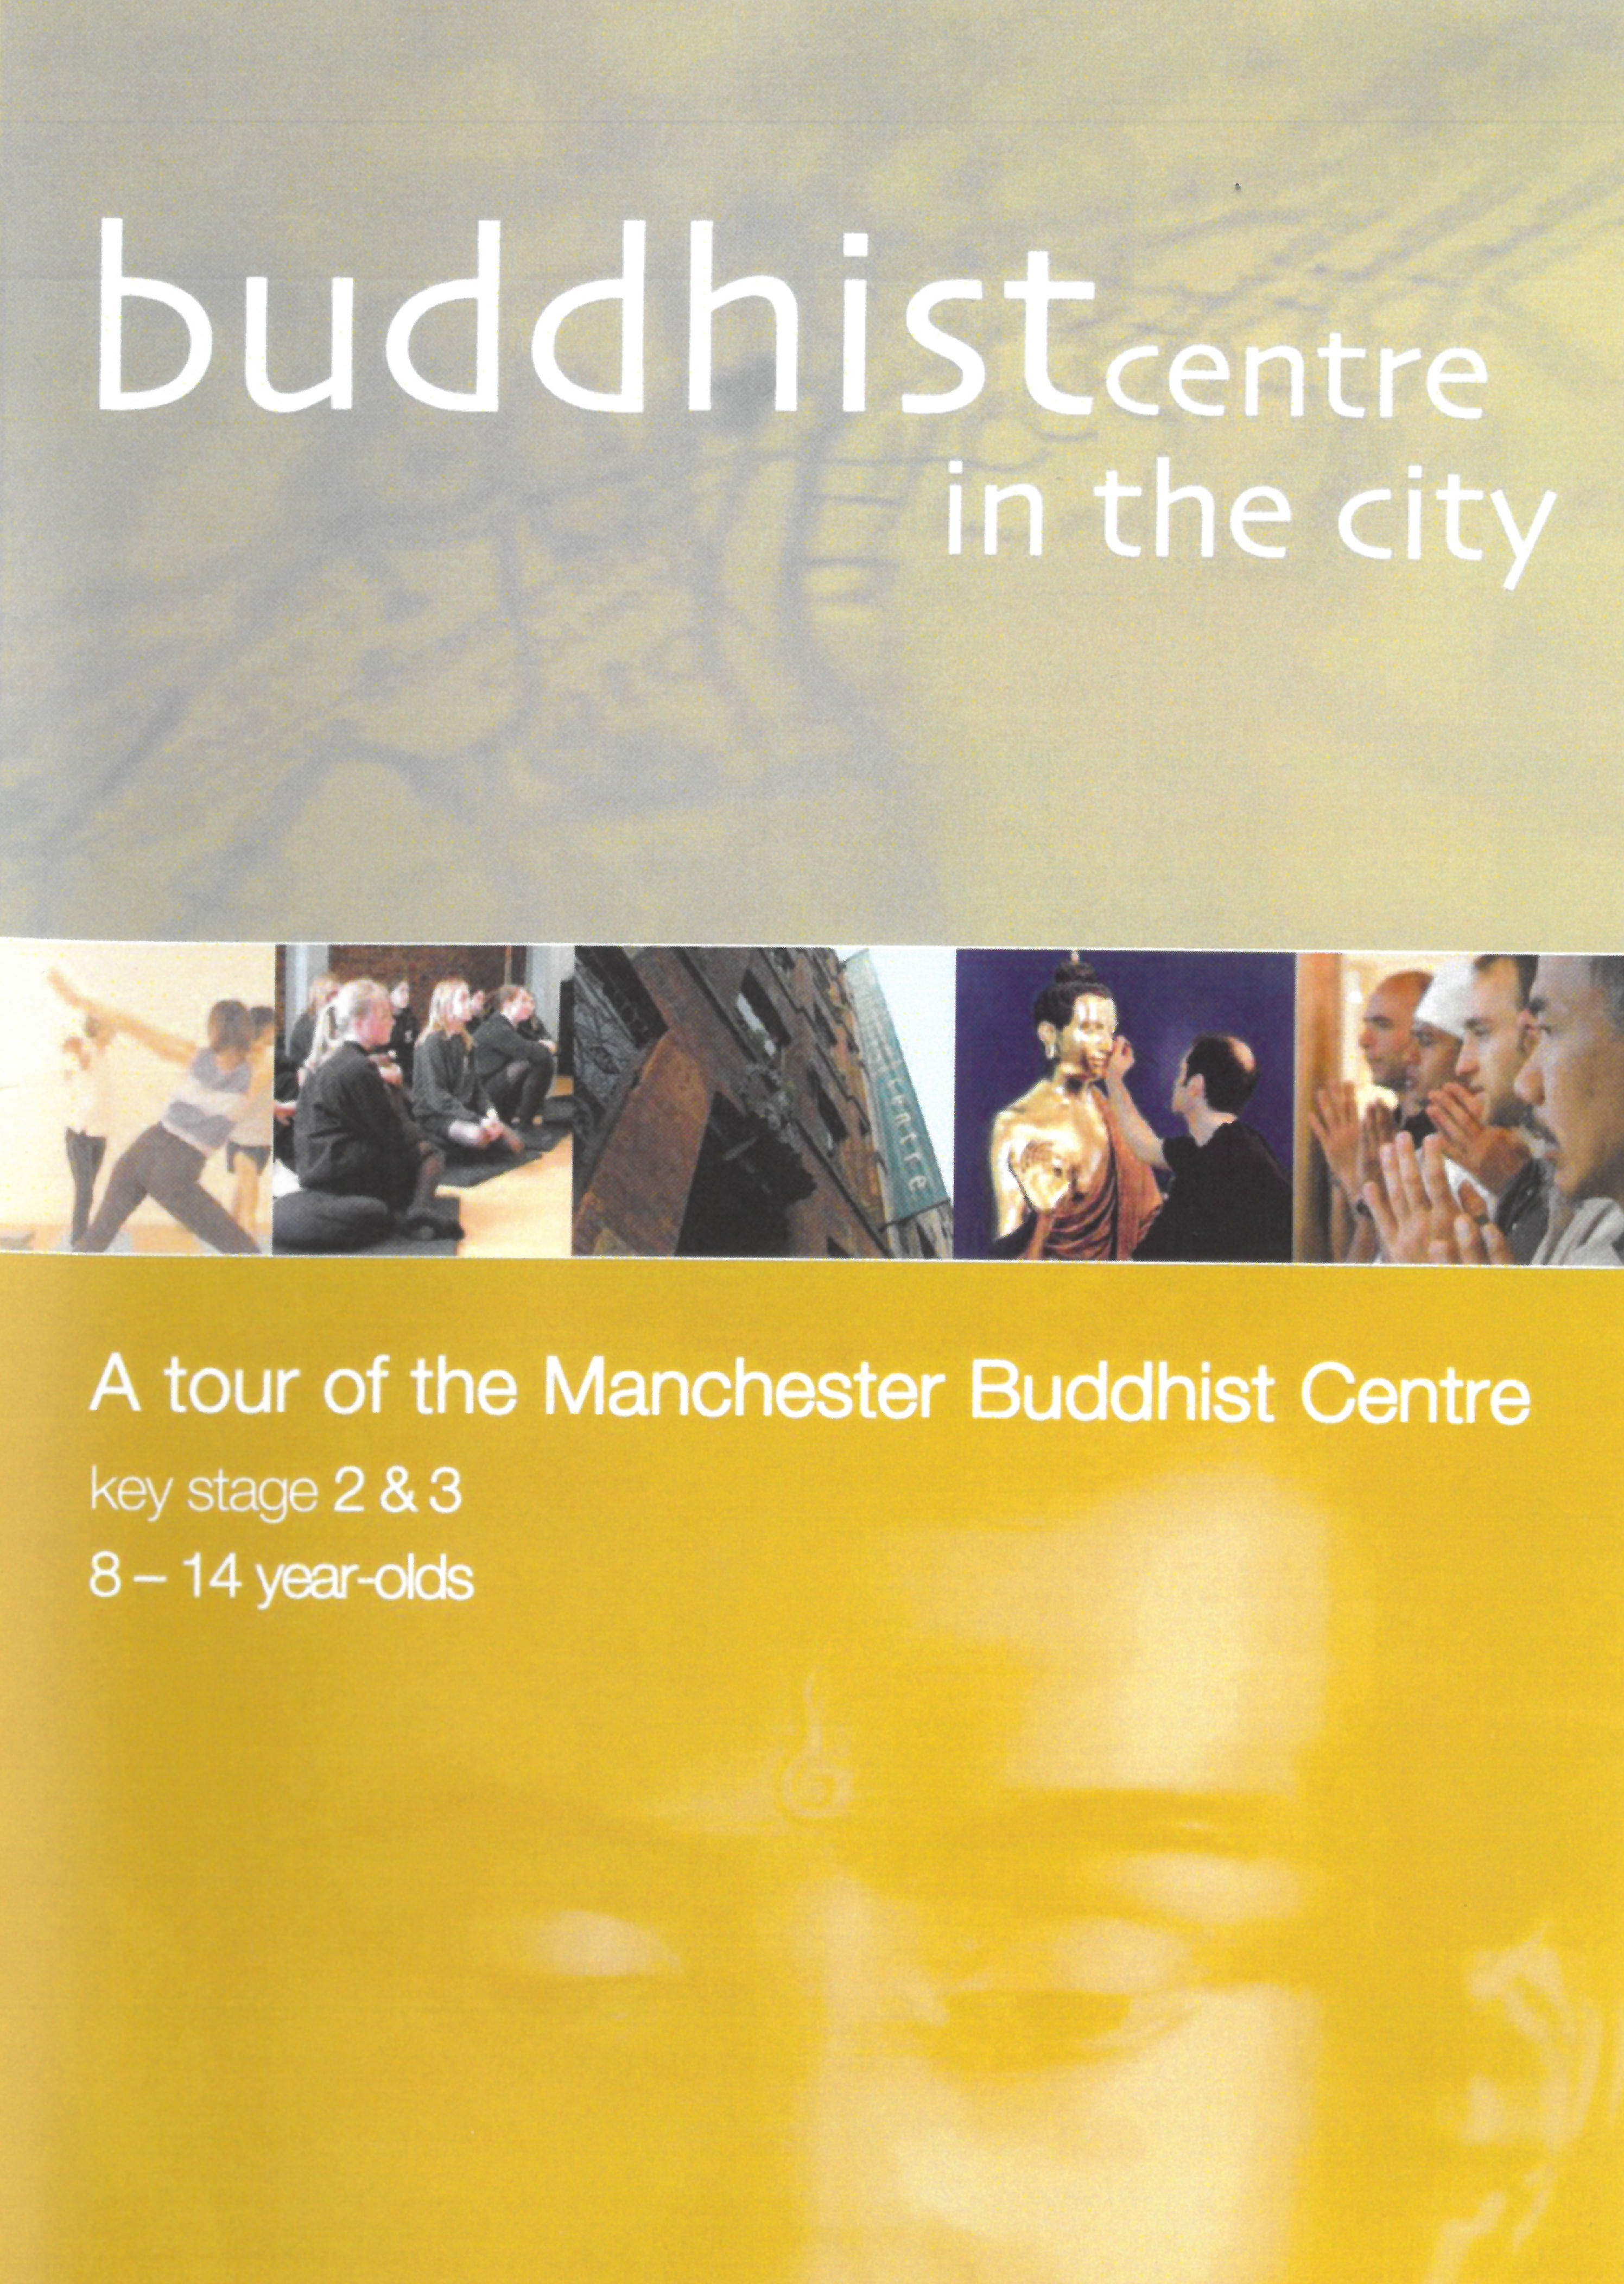 More information on Buddhist Centre in the City